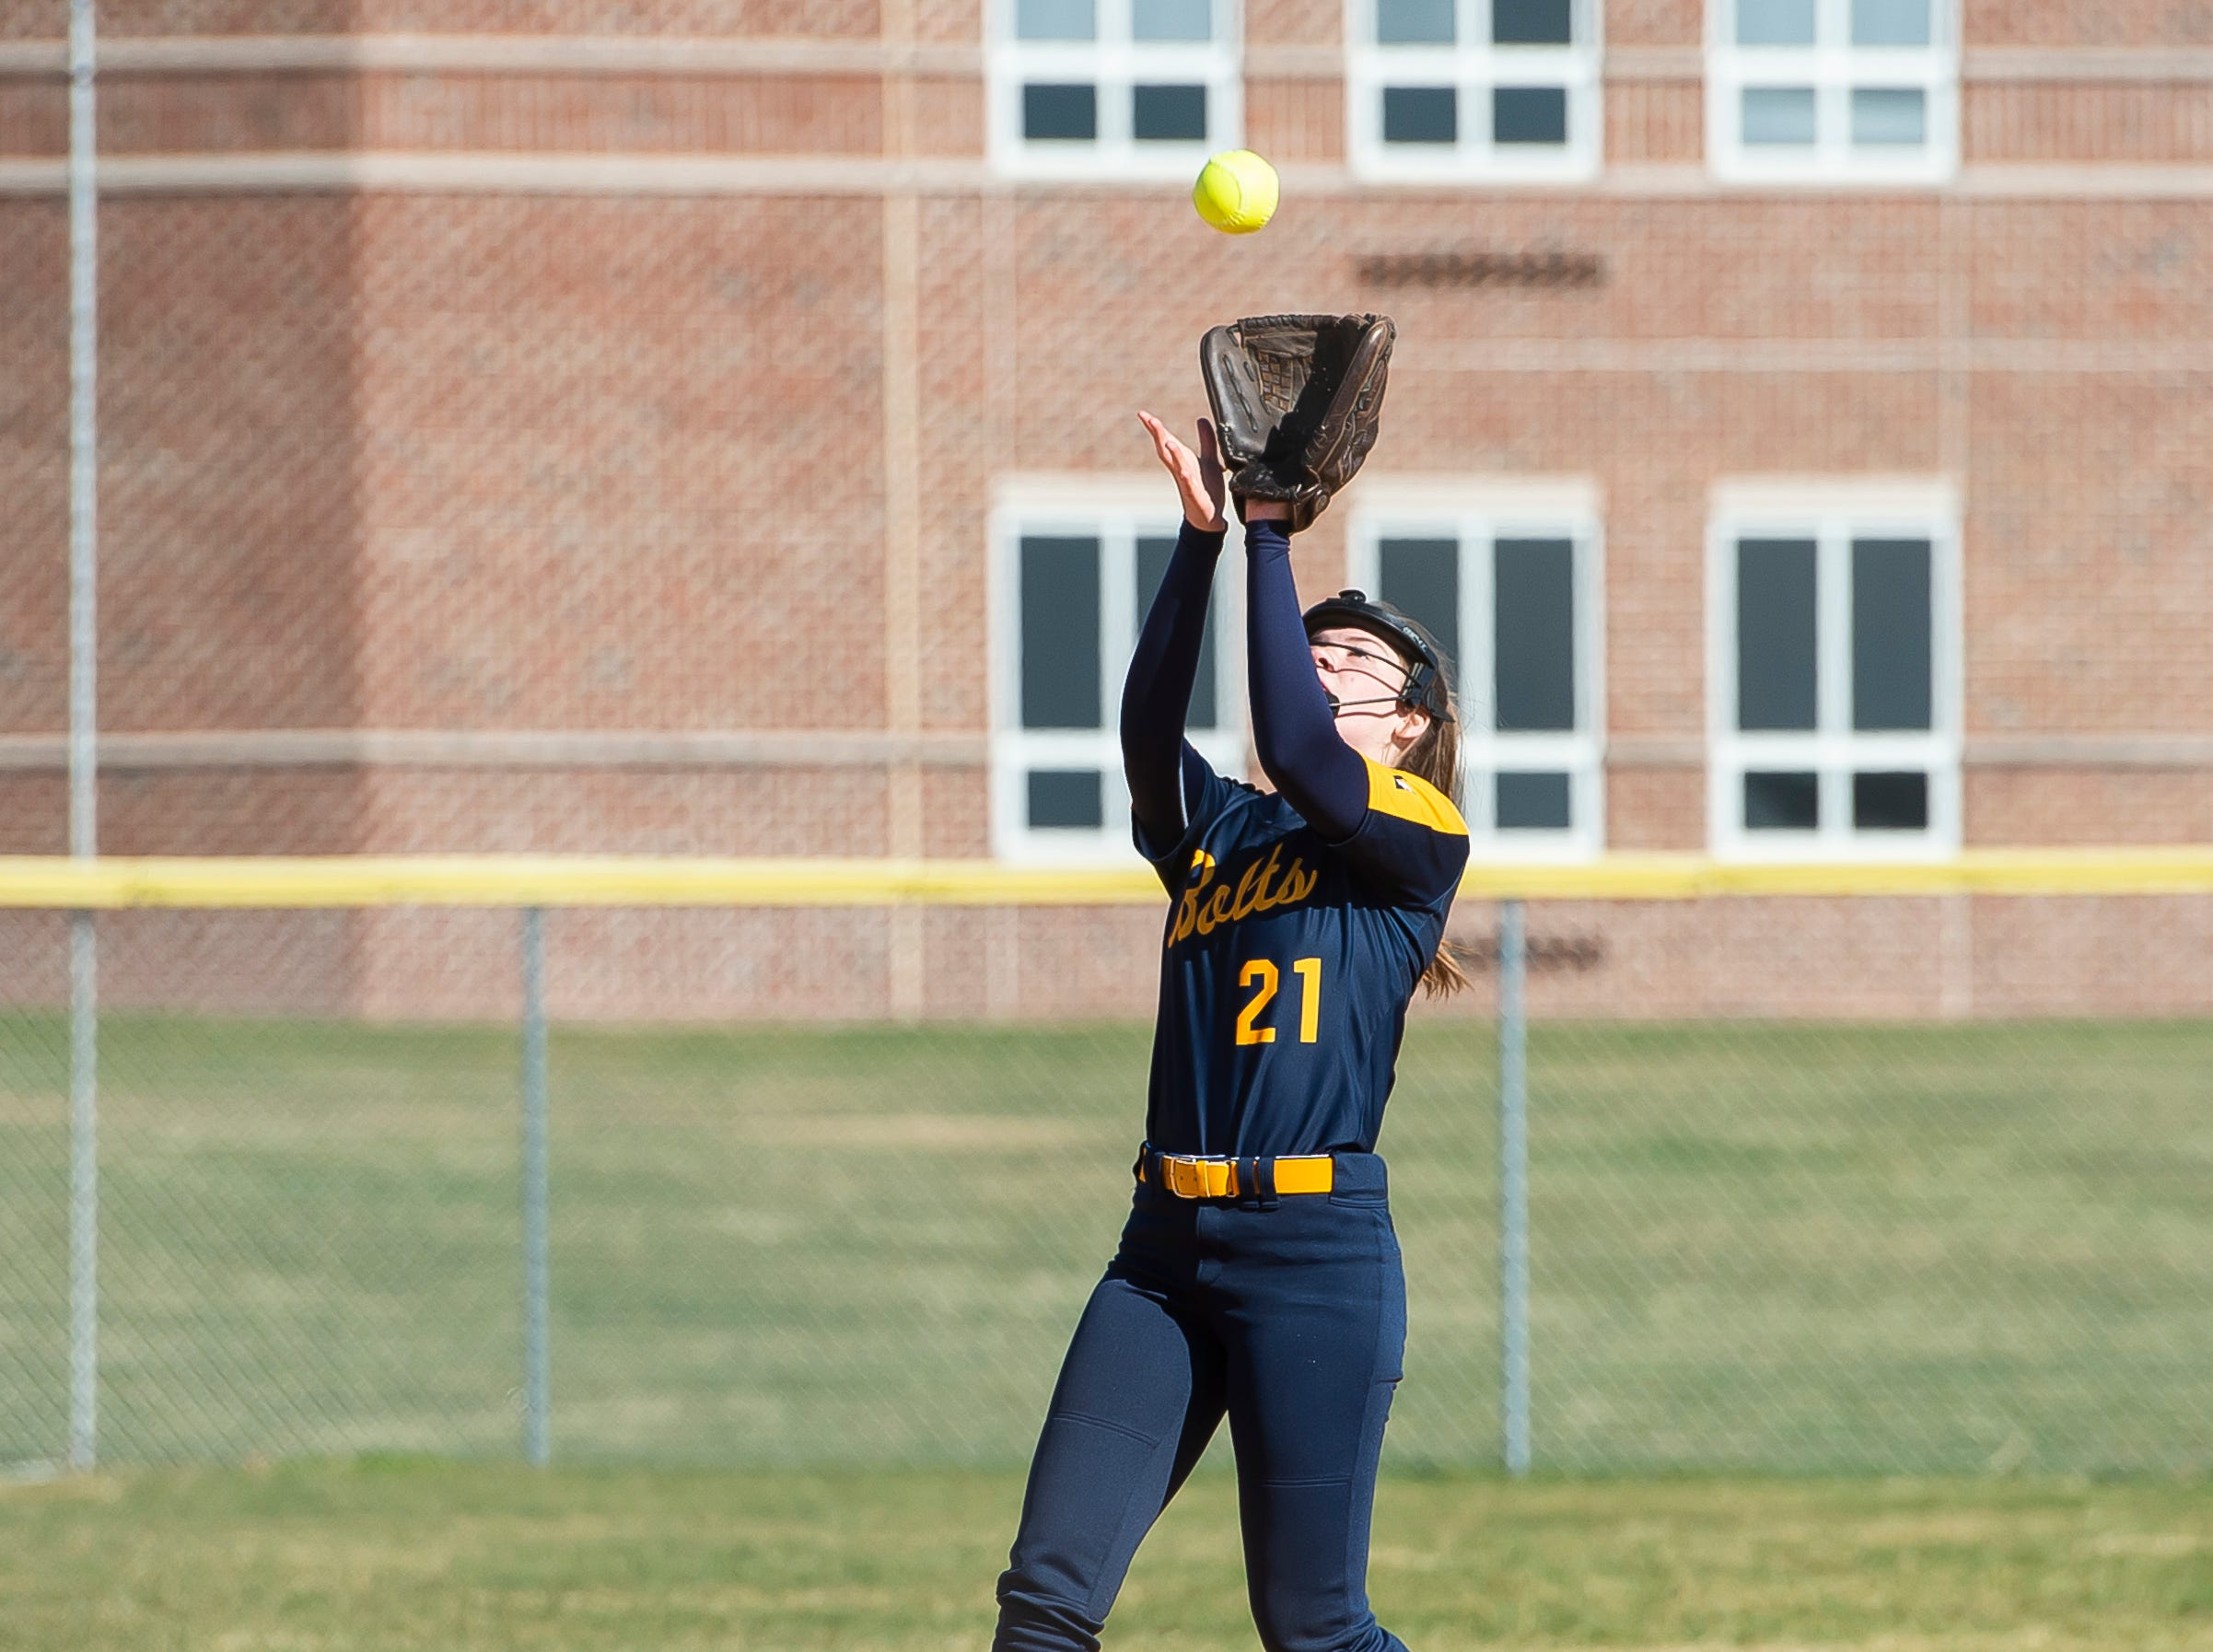 Littlestown's Kacie Frock catches an infield fly to record an out during a YAIAA softball game against Gettysburg on Monday, April 1, 2019. The Bolts won 10-4.